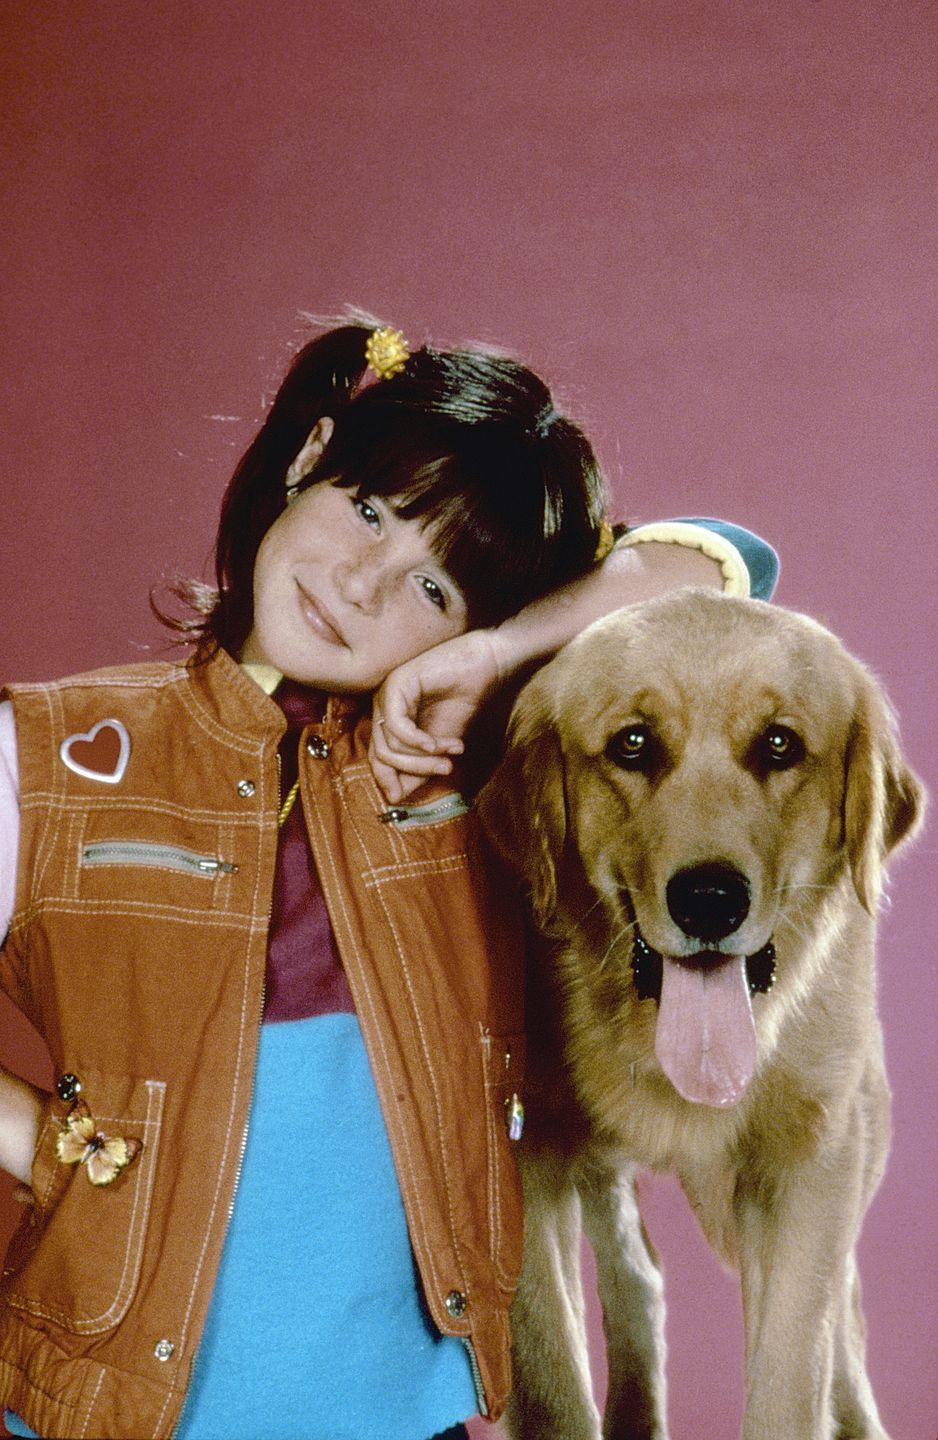 """<p>Soleil's career kicked off at 8 years old when she got the role of <em><a href=""""https://www.goodhousekeeping.com/life/entertainment/news/a38577/soleil-moon-frye-punky-brewster-baby-name/"""" rel=""""nofollow noopener"""" target=""""_blank"""" data-ylk=""""slk:Punky Brewster"""" class=""""link rapid-noclick-resp"""">Punky Brewster</a> </em>in the TV series about a little girl abandoned the supermarket with her dog. It had a strong following, running for five seasons. Soleil had many other guest roles on '80s TV shows. </p>"""